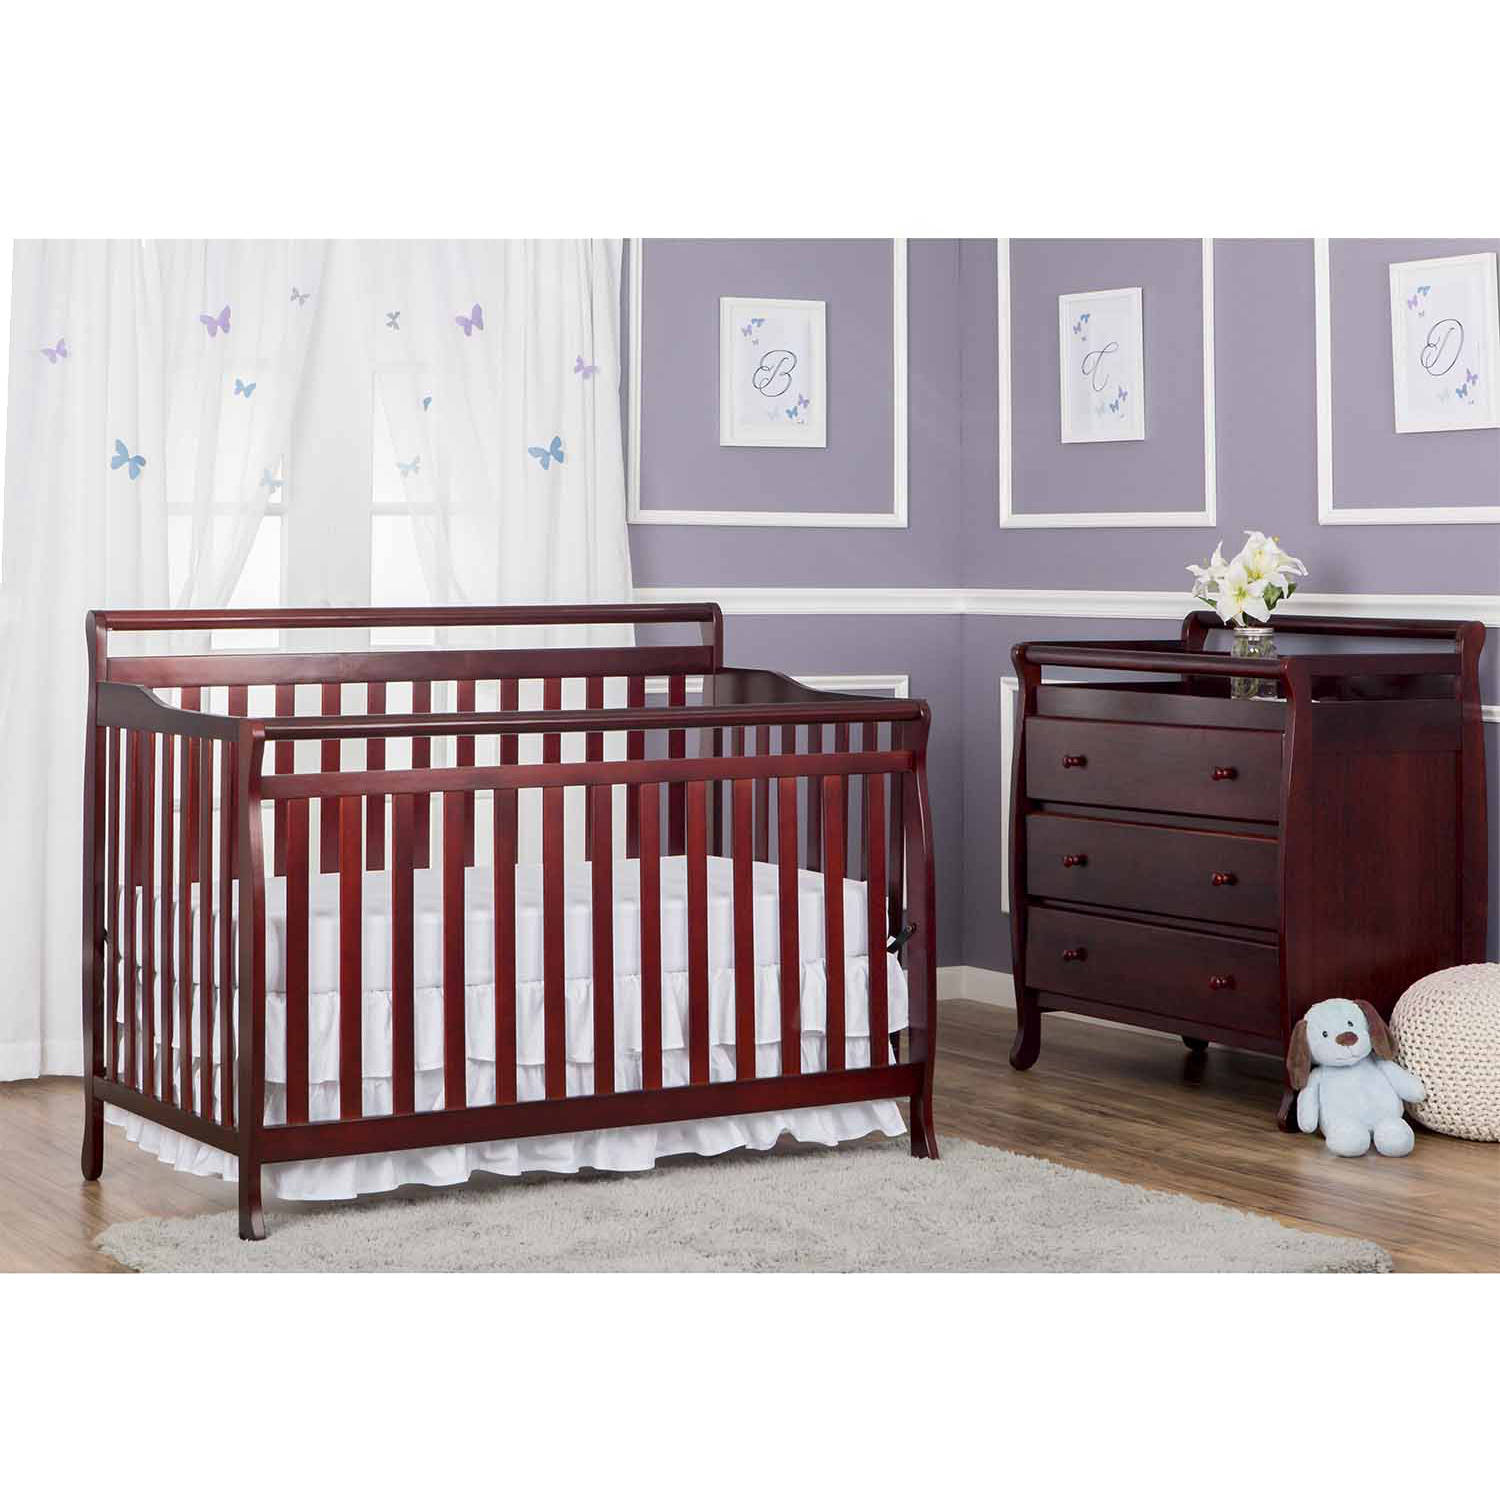 simmons nursery furniture. Simmons Nursery Furniture